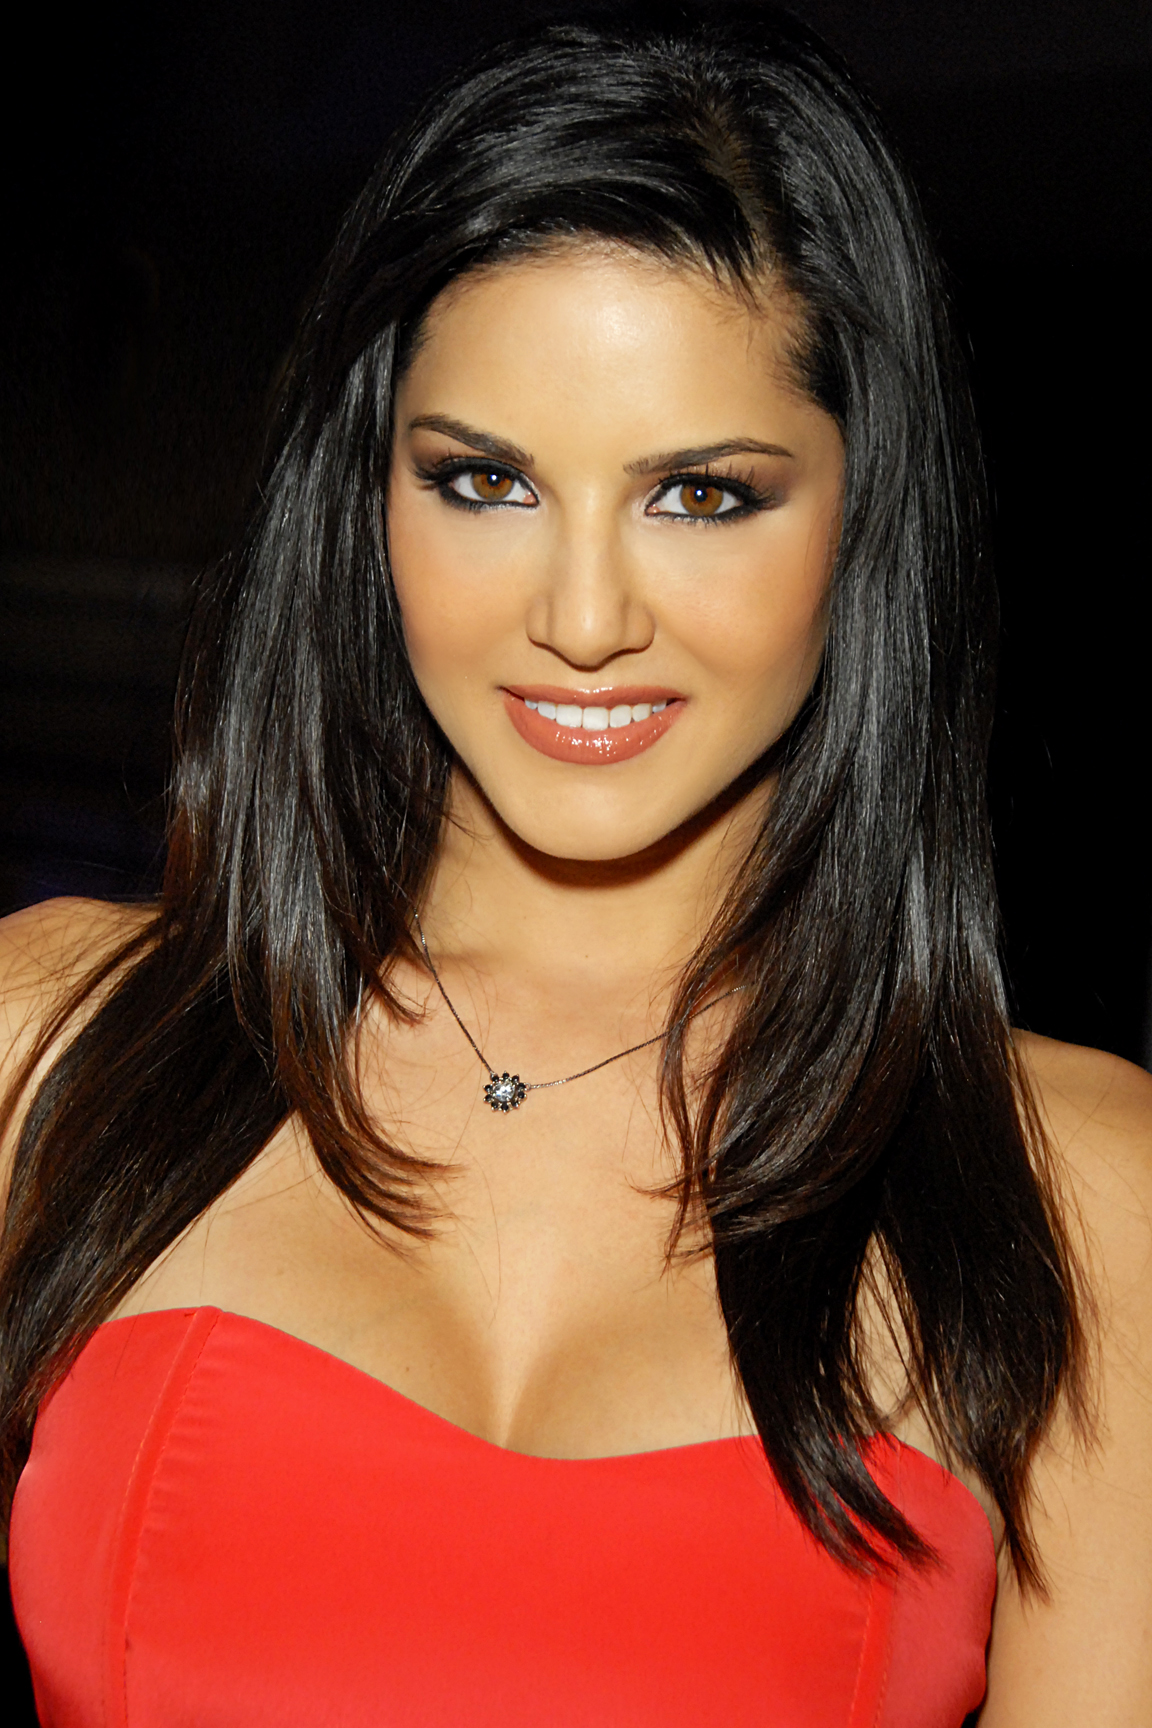 https://upload.wikimedia.org/wikipedia/commons/1/1b/Sunny_Leone_2012.jpg